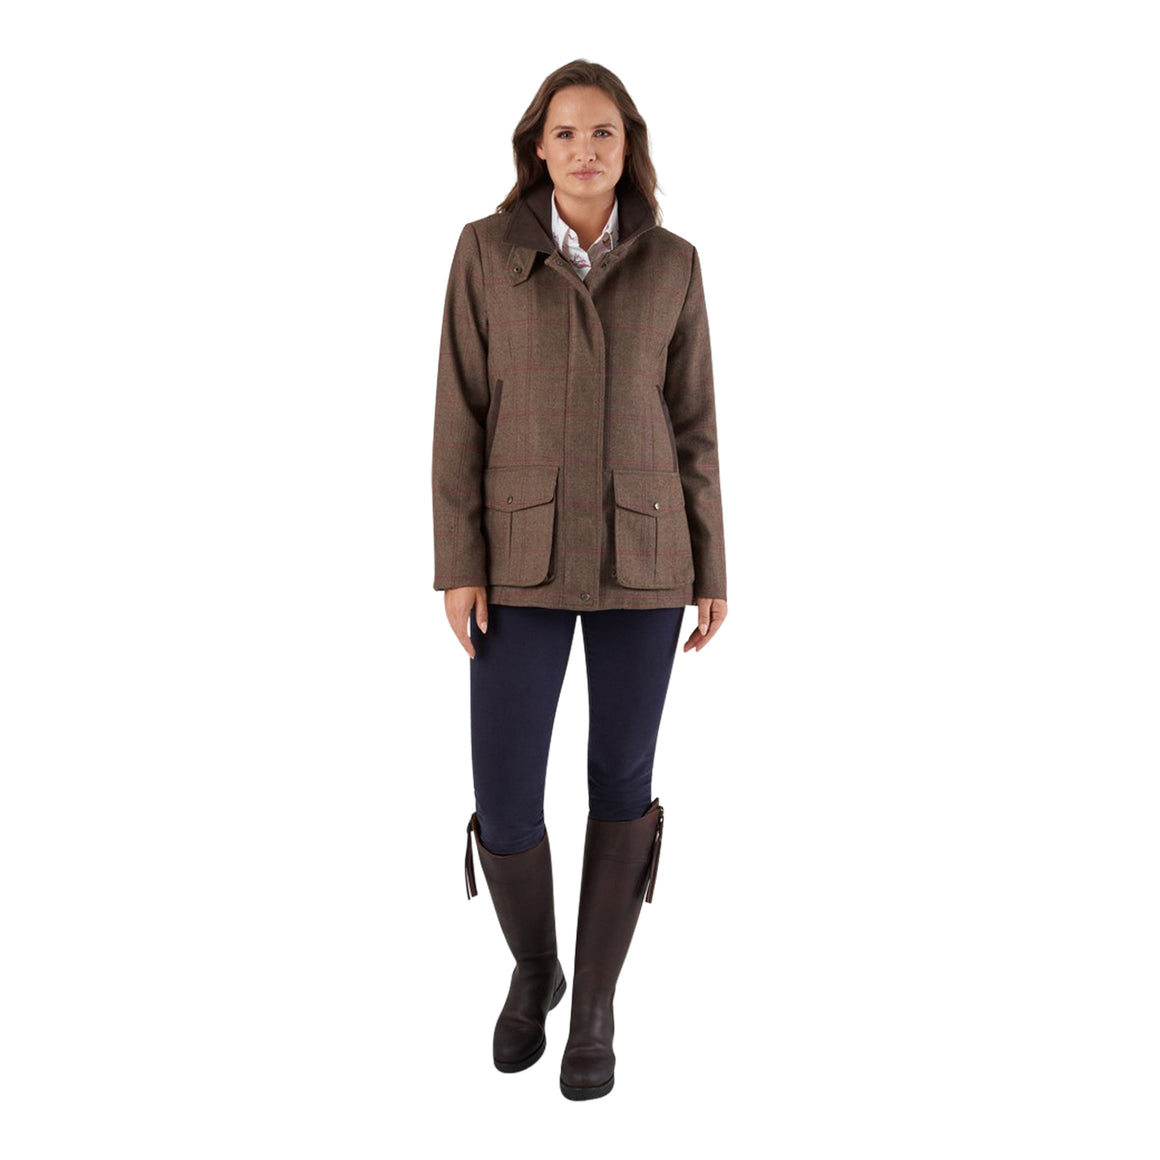 Lilymere Jacket for Women in Sussex Tweed